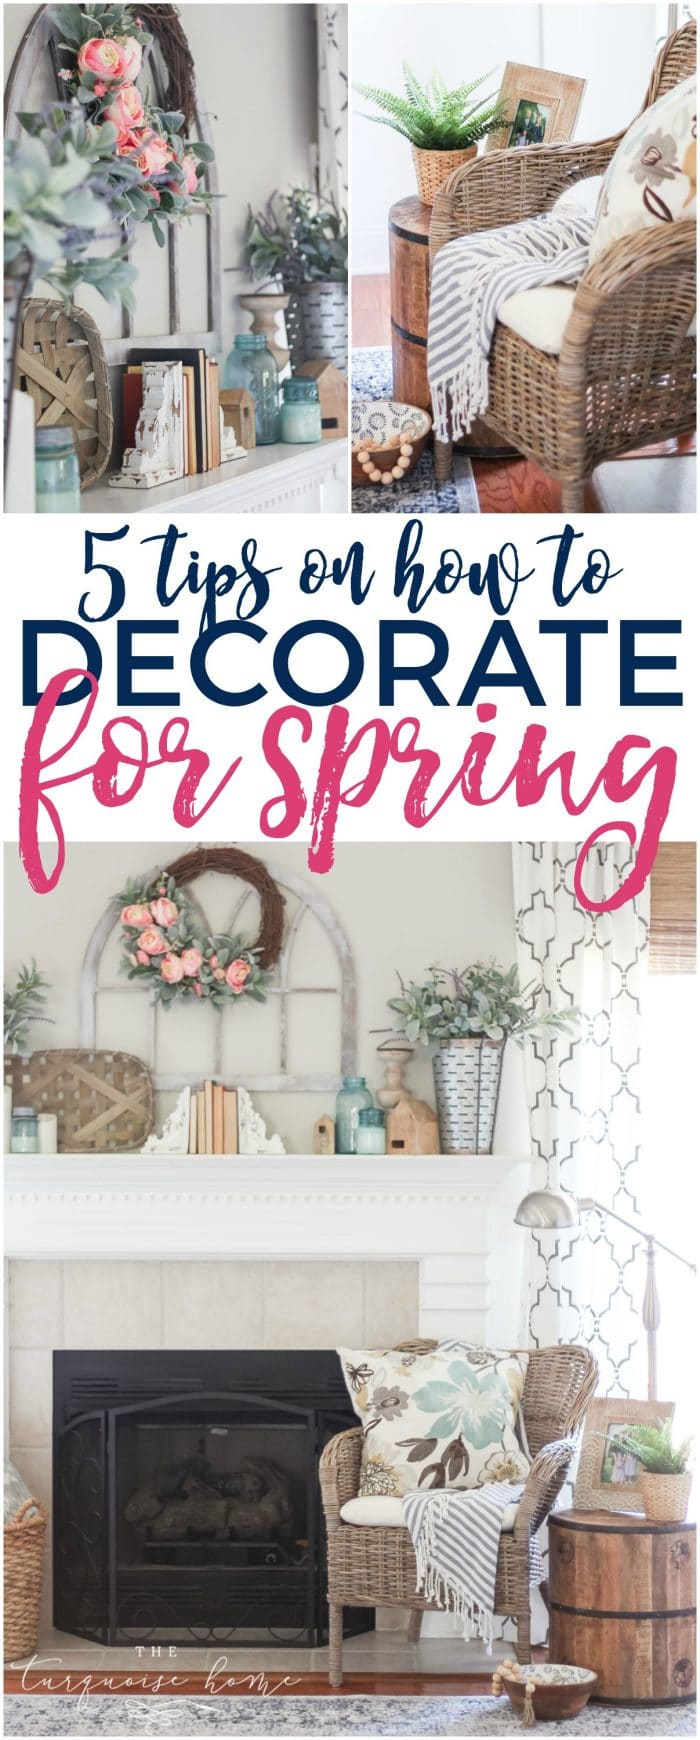 5 Tips on How to Decorate for Spring